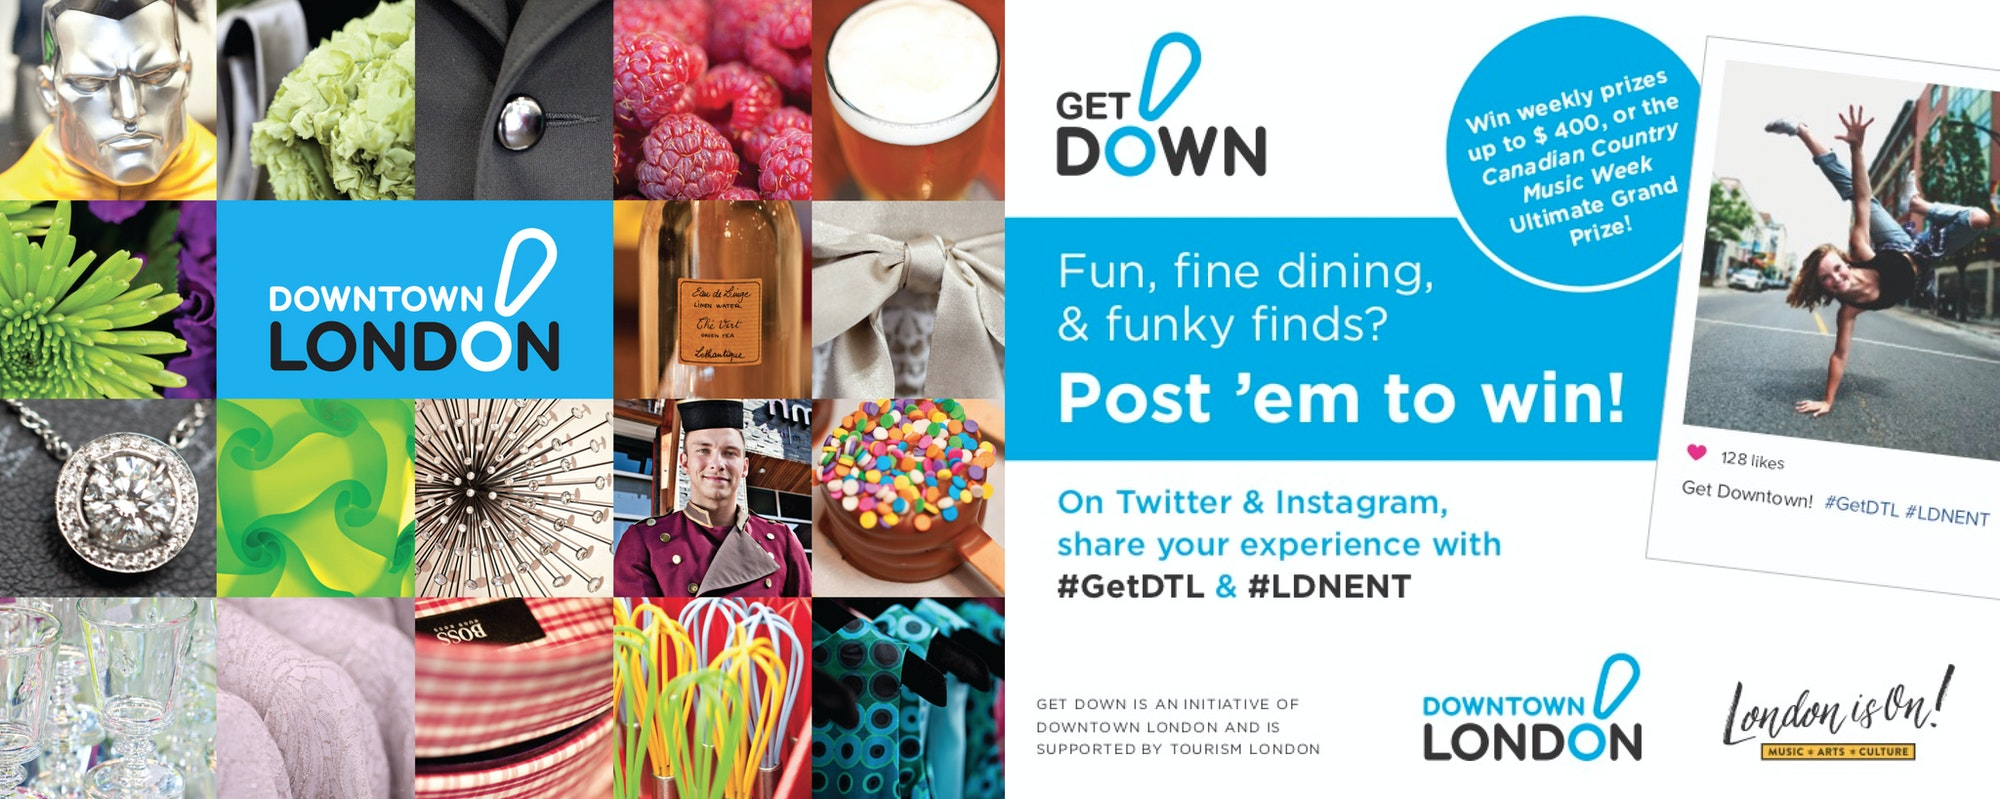 Photo collage showcasing various downtown London products & advertising contest